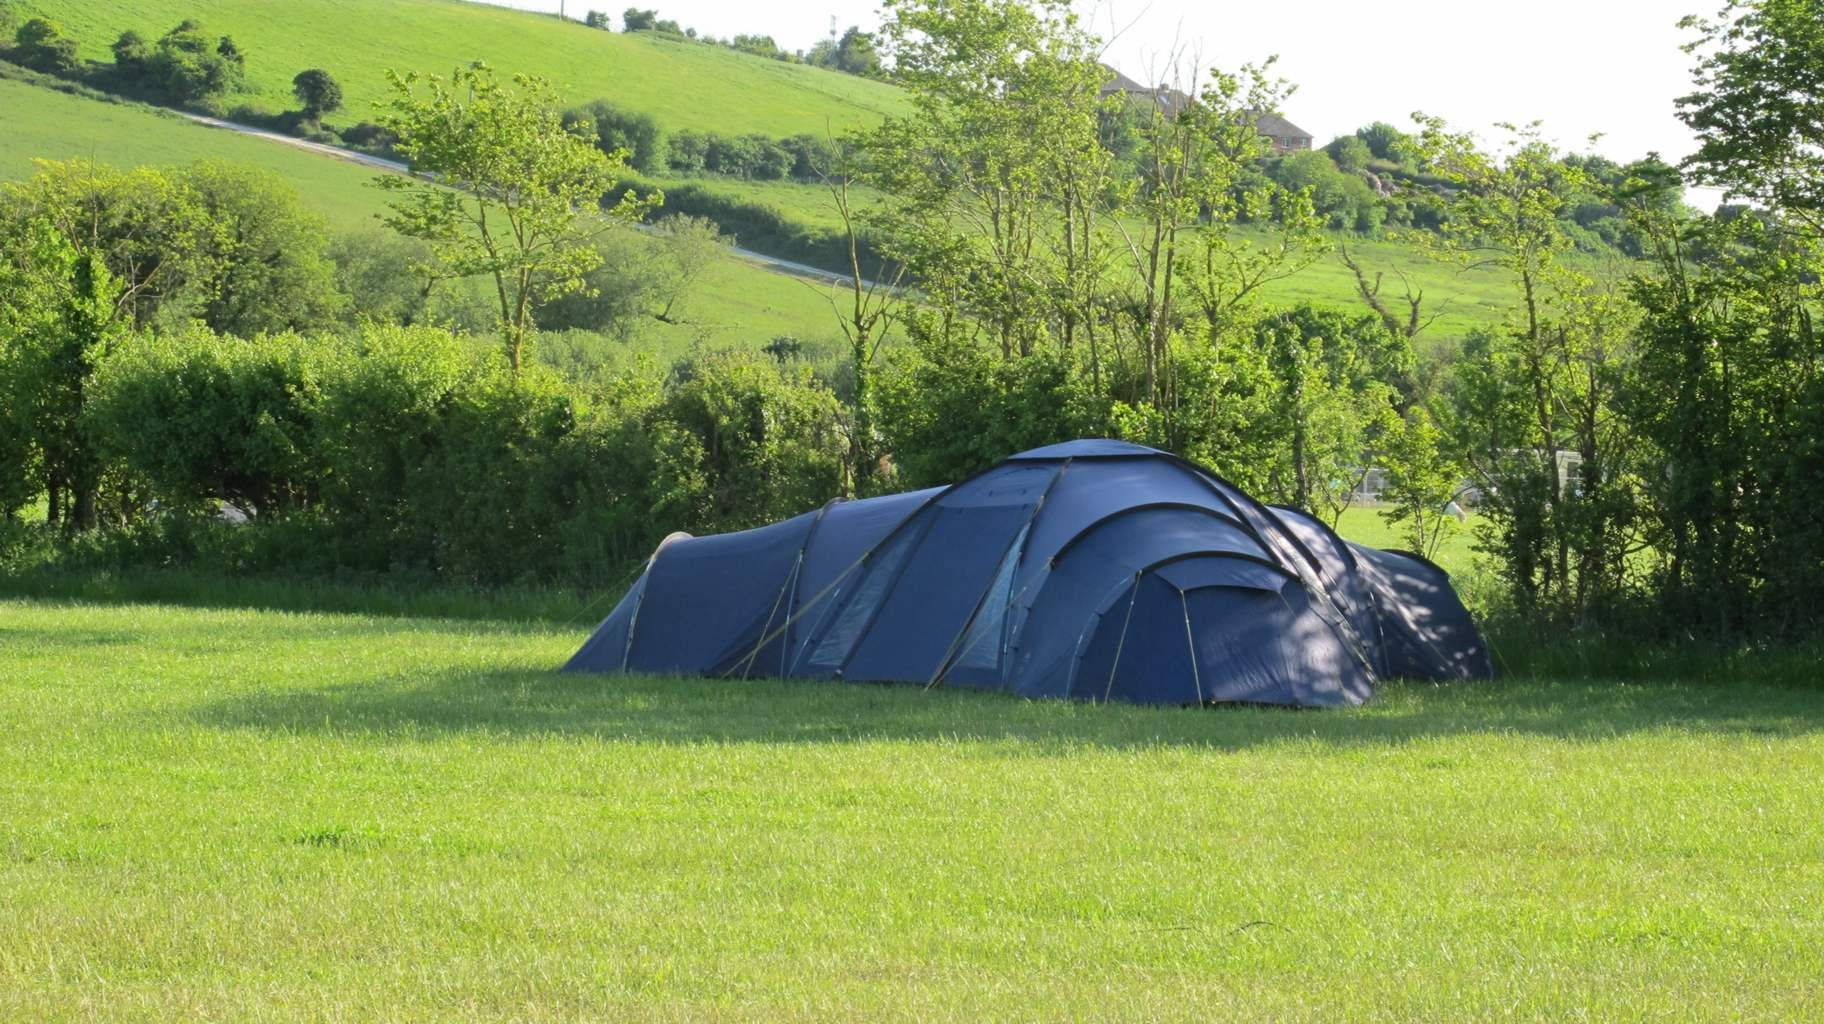 Cottages amp campground rentals riverview cottages campground jackman - Eweleaze Farm Camping By The Sea Campsites Uk Pinterest Camping The O Jays And Farms